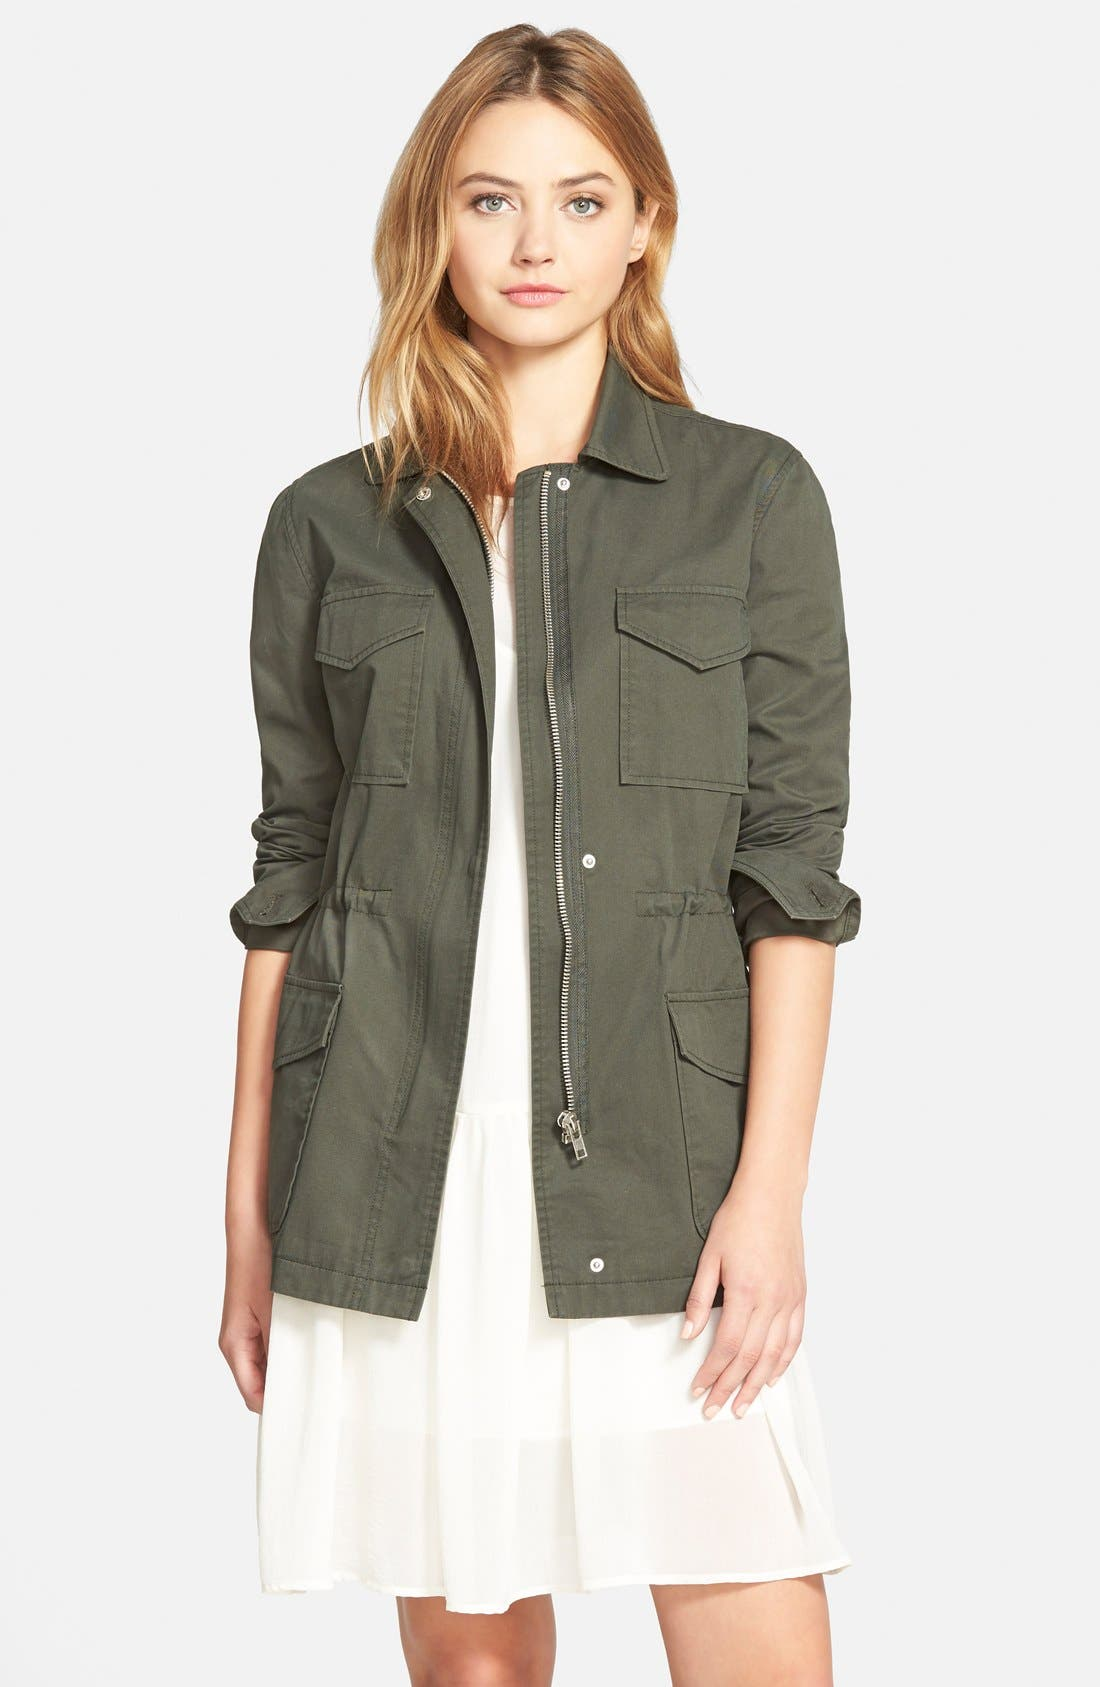 Alternate Image 1 Selected - cupcakes and cashmere 'Presidio' Military Jacket (Nordstrom Exclusive)